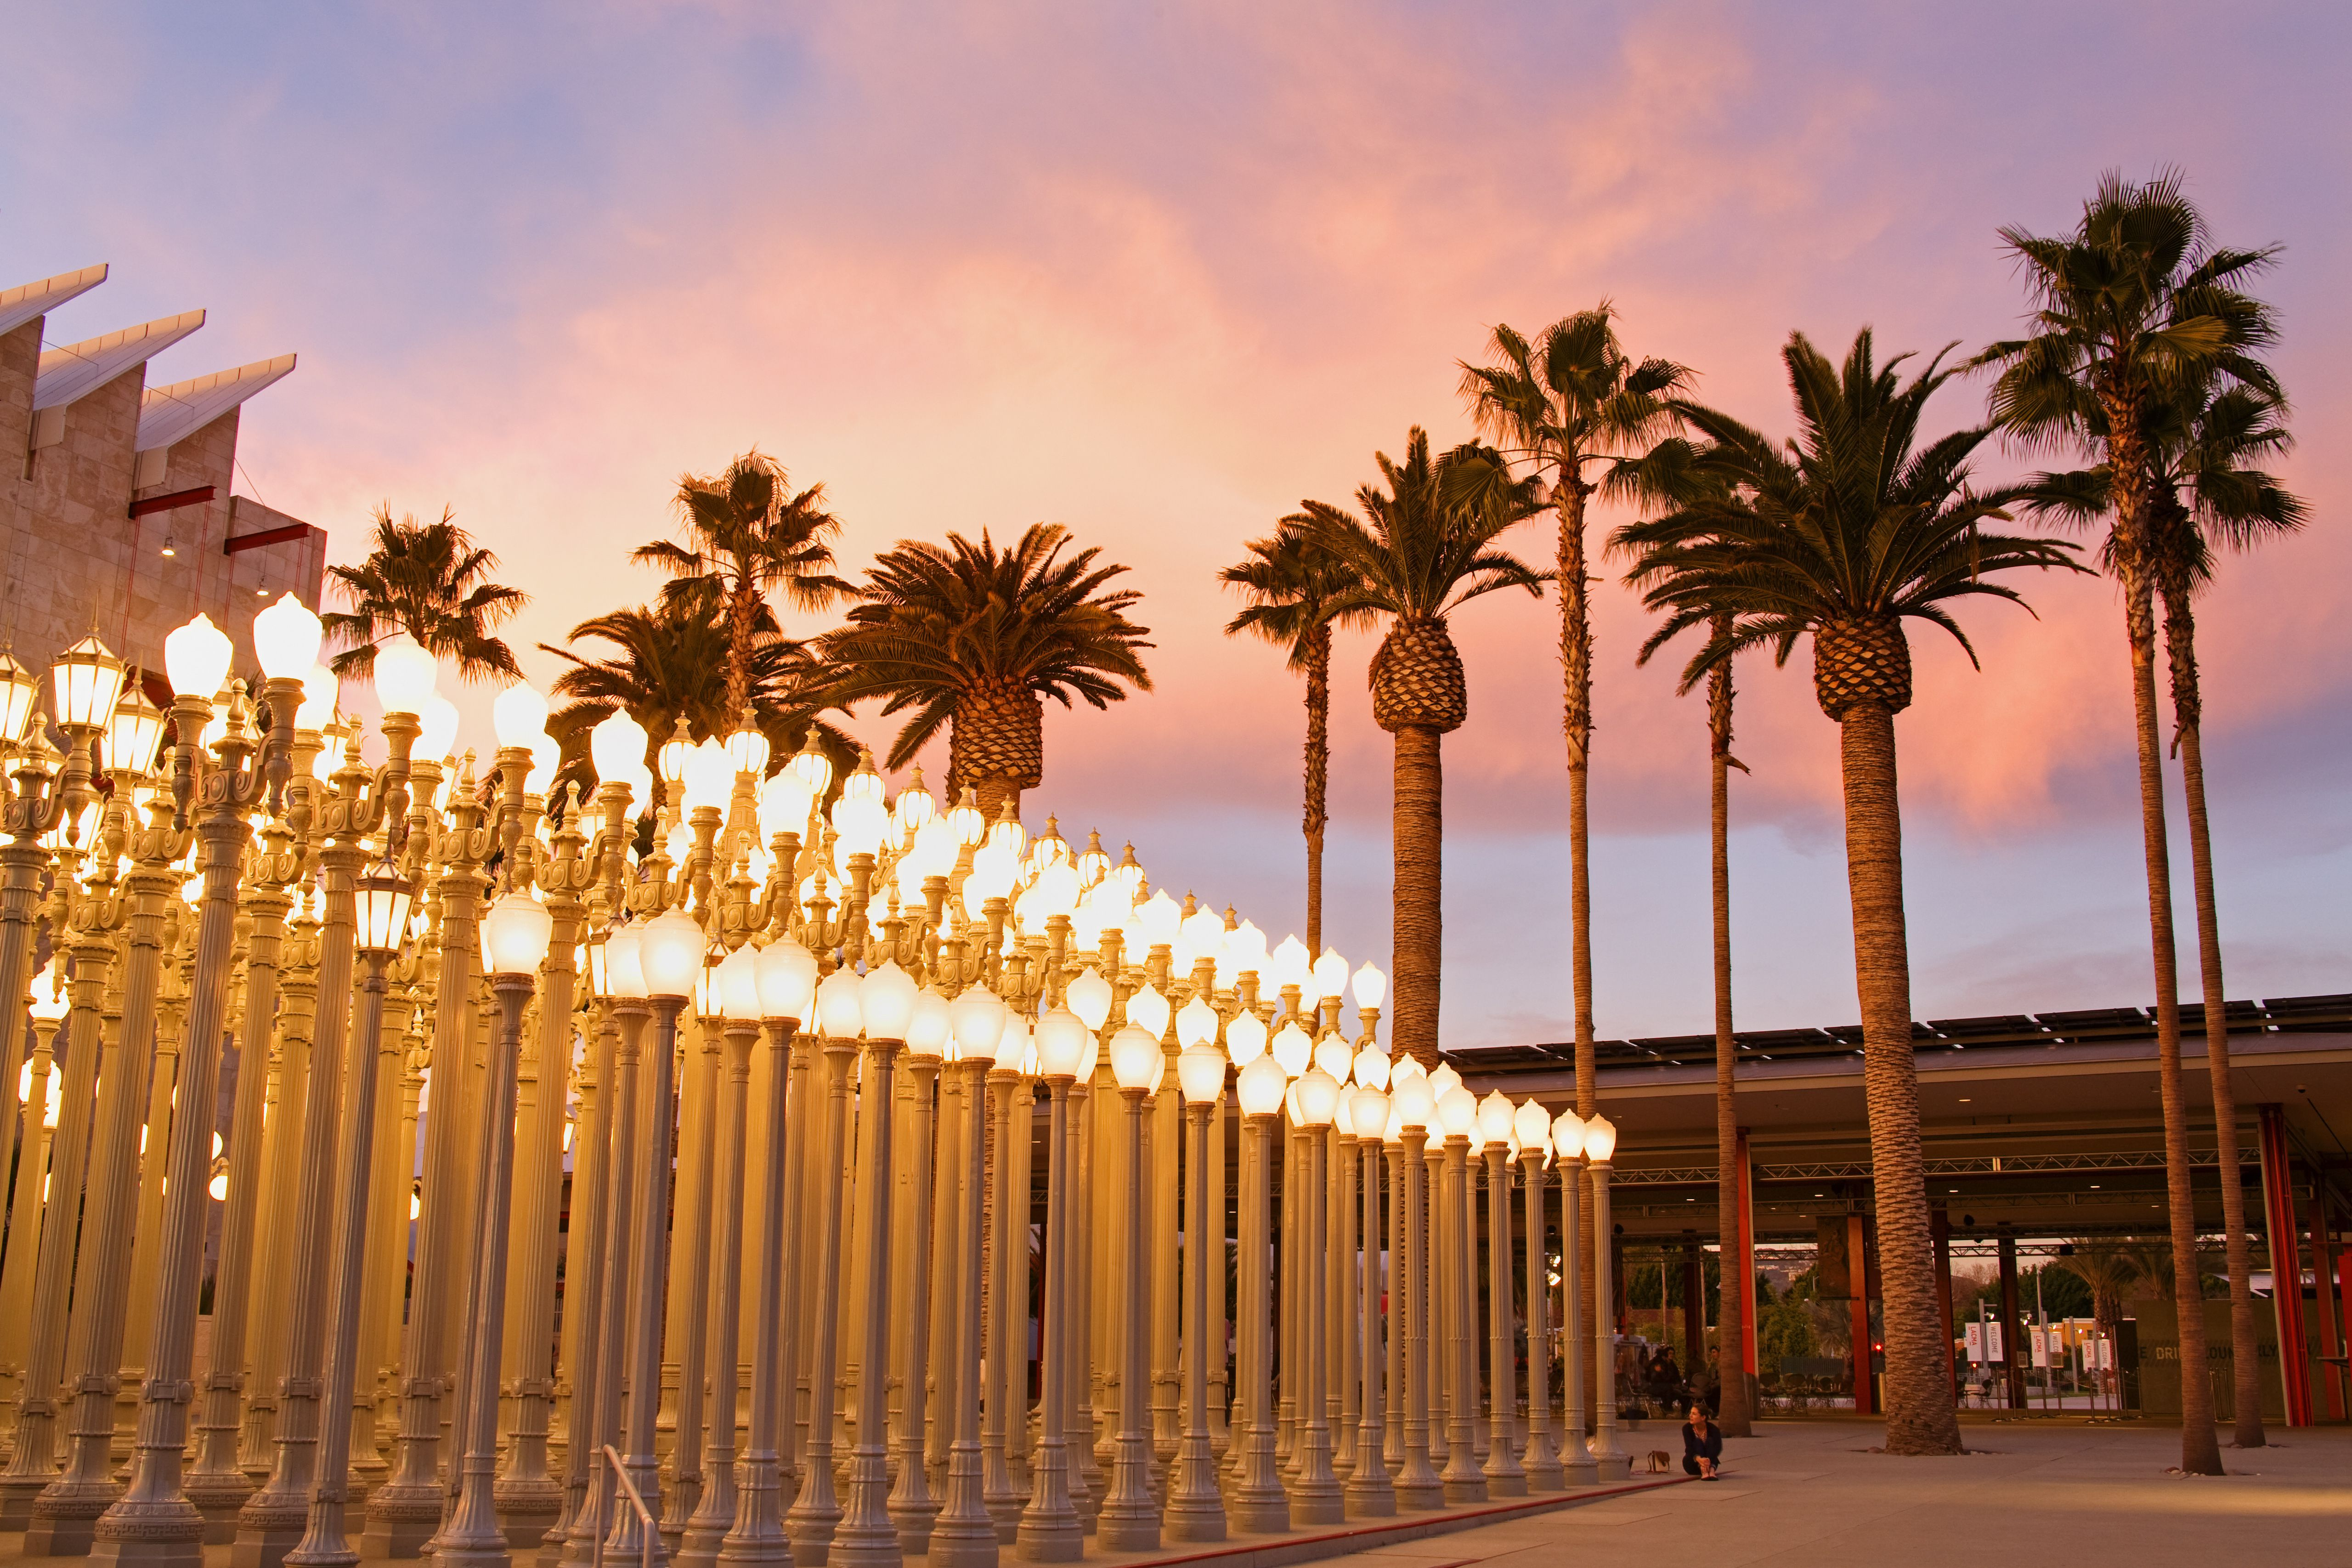 Urban Light by Chris Burden outside Los Angeles County Museum of Art.